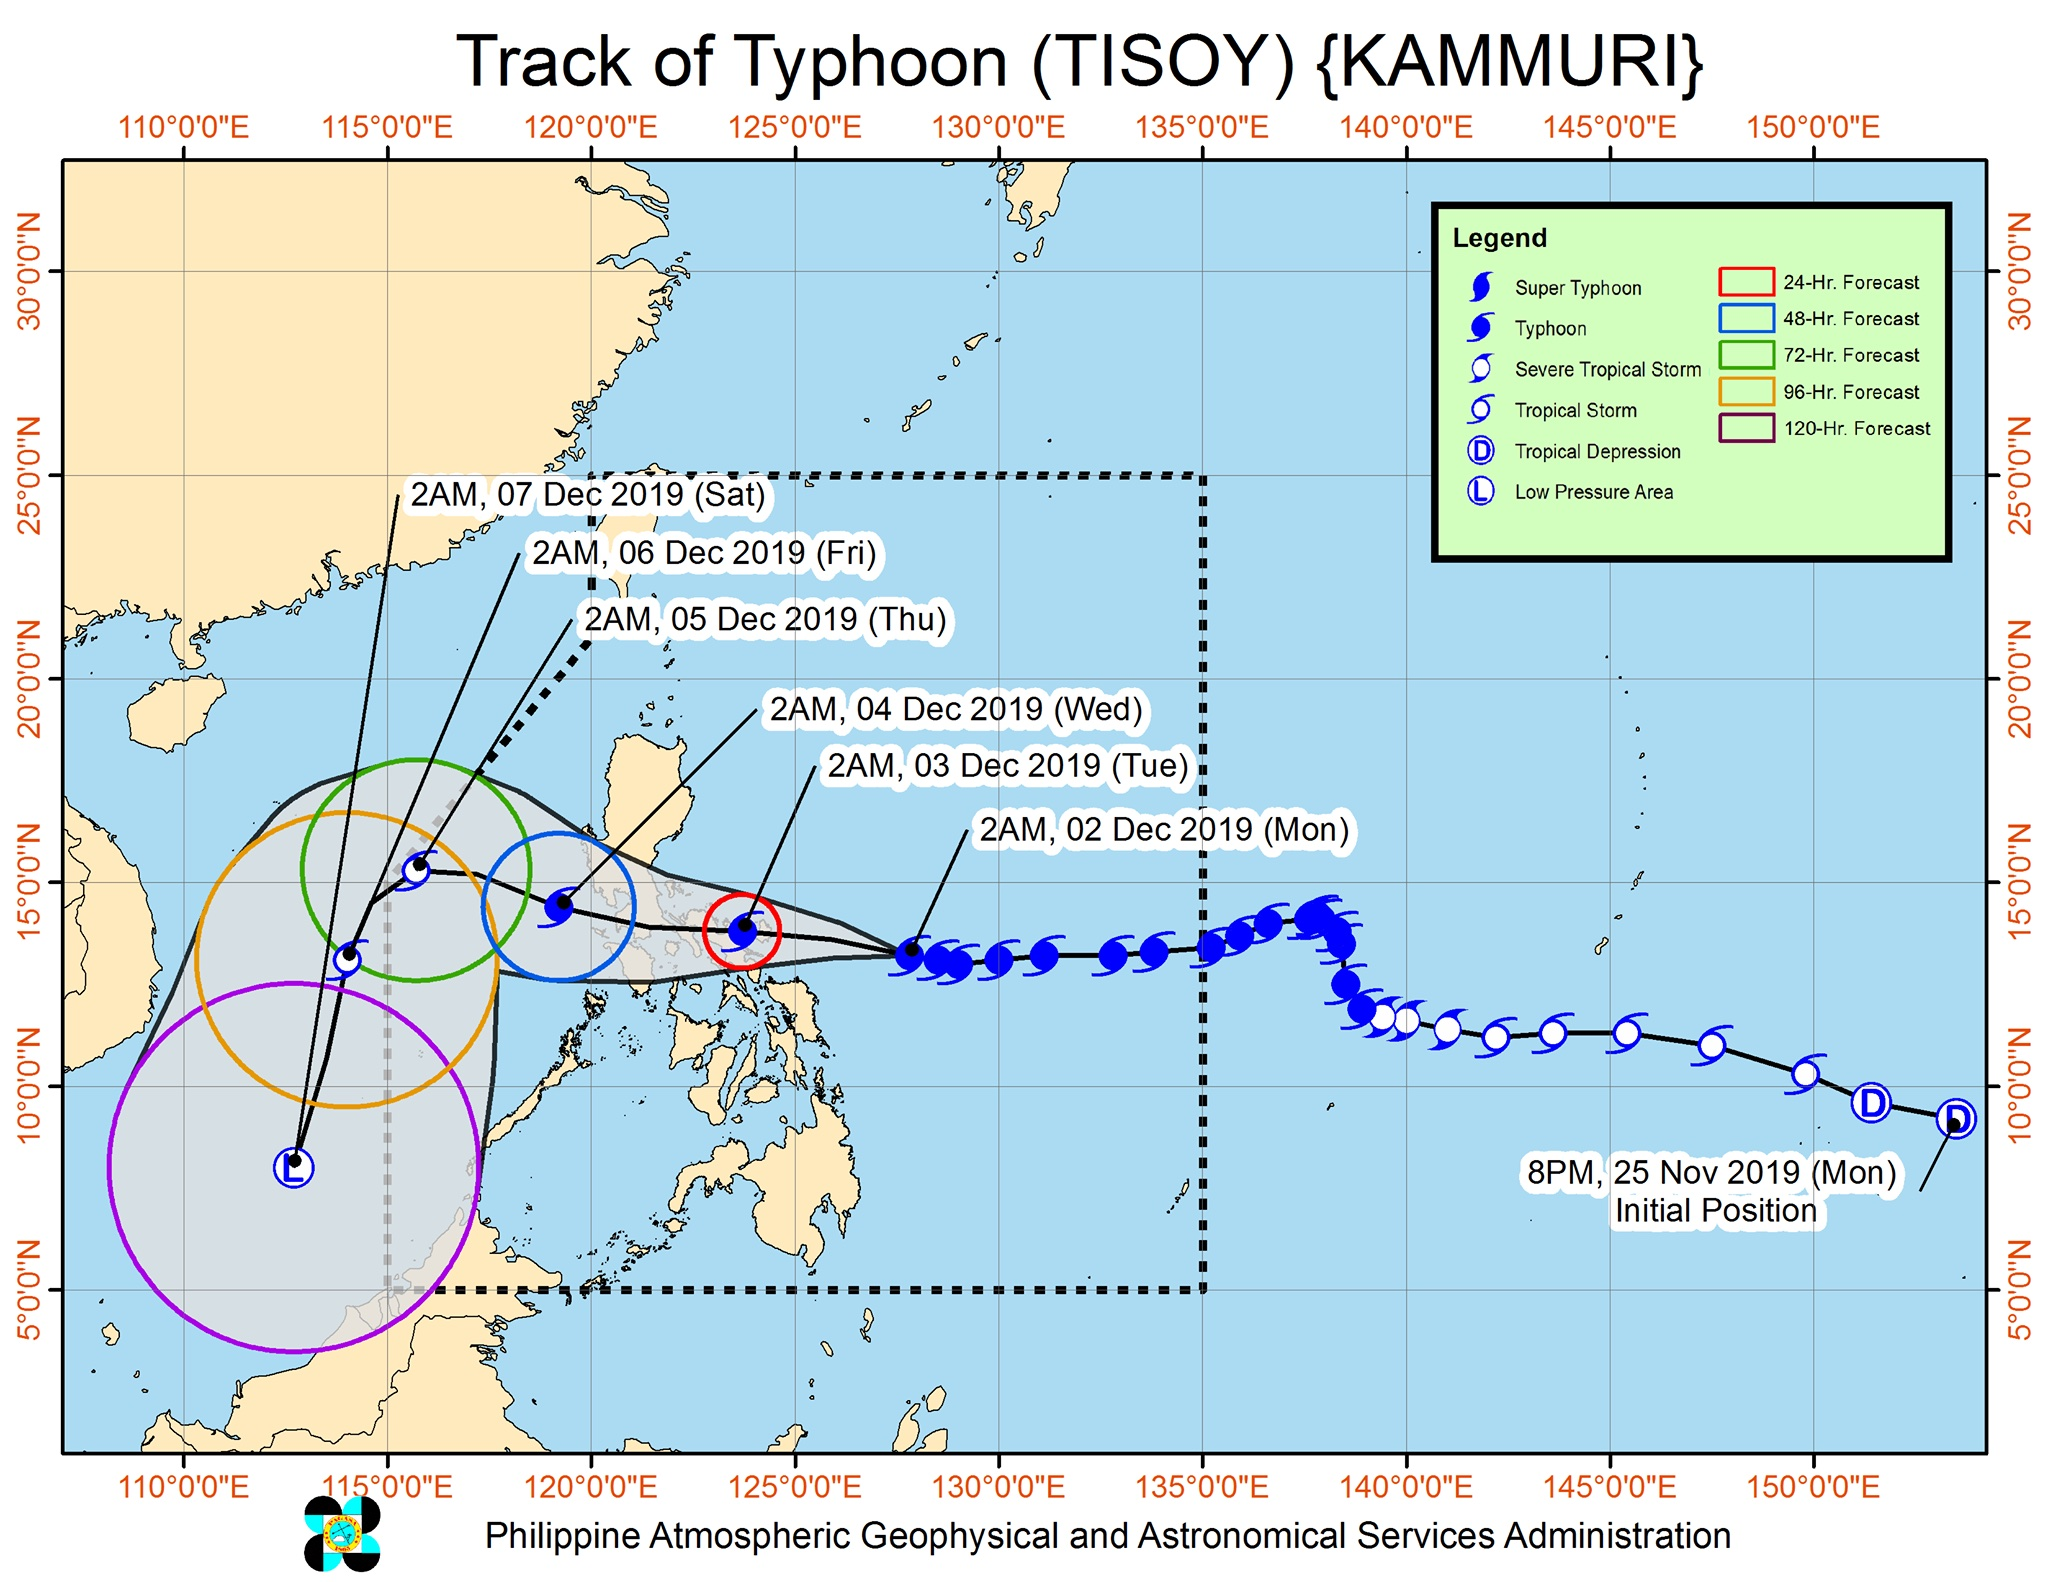 Forecast track of Typhoon Tisoy (Kammuri) as of December 2, 2019, 5 am. Image from PAGASA